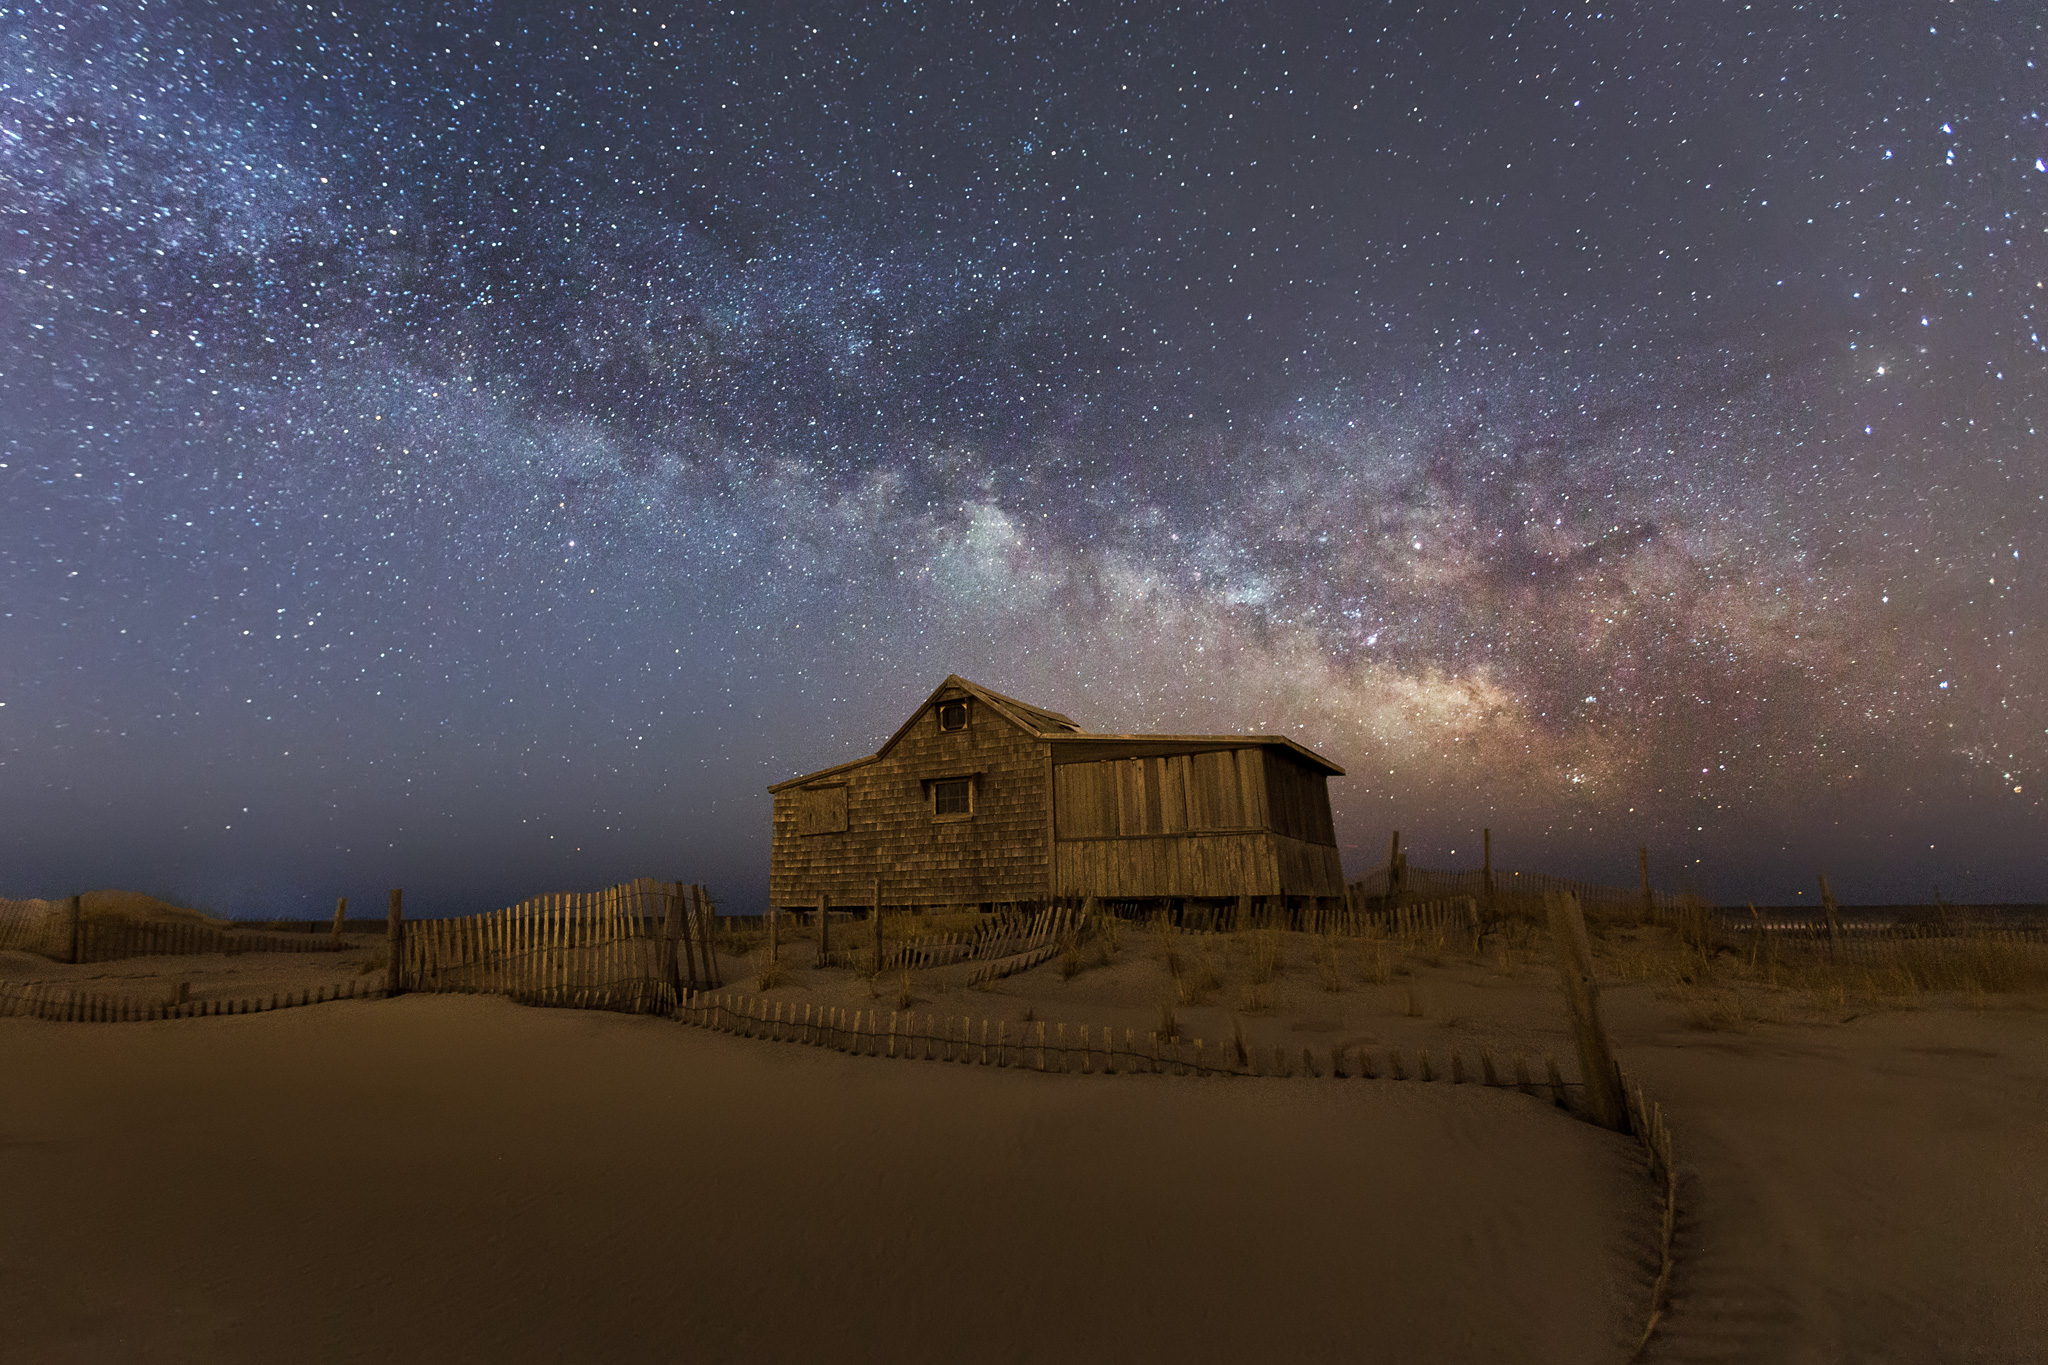 Milky Way above the Judge's Shack